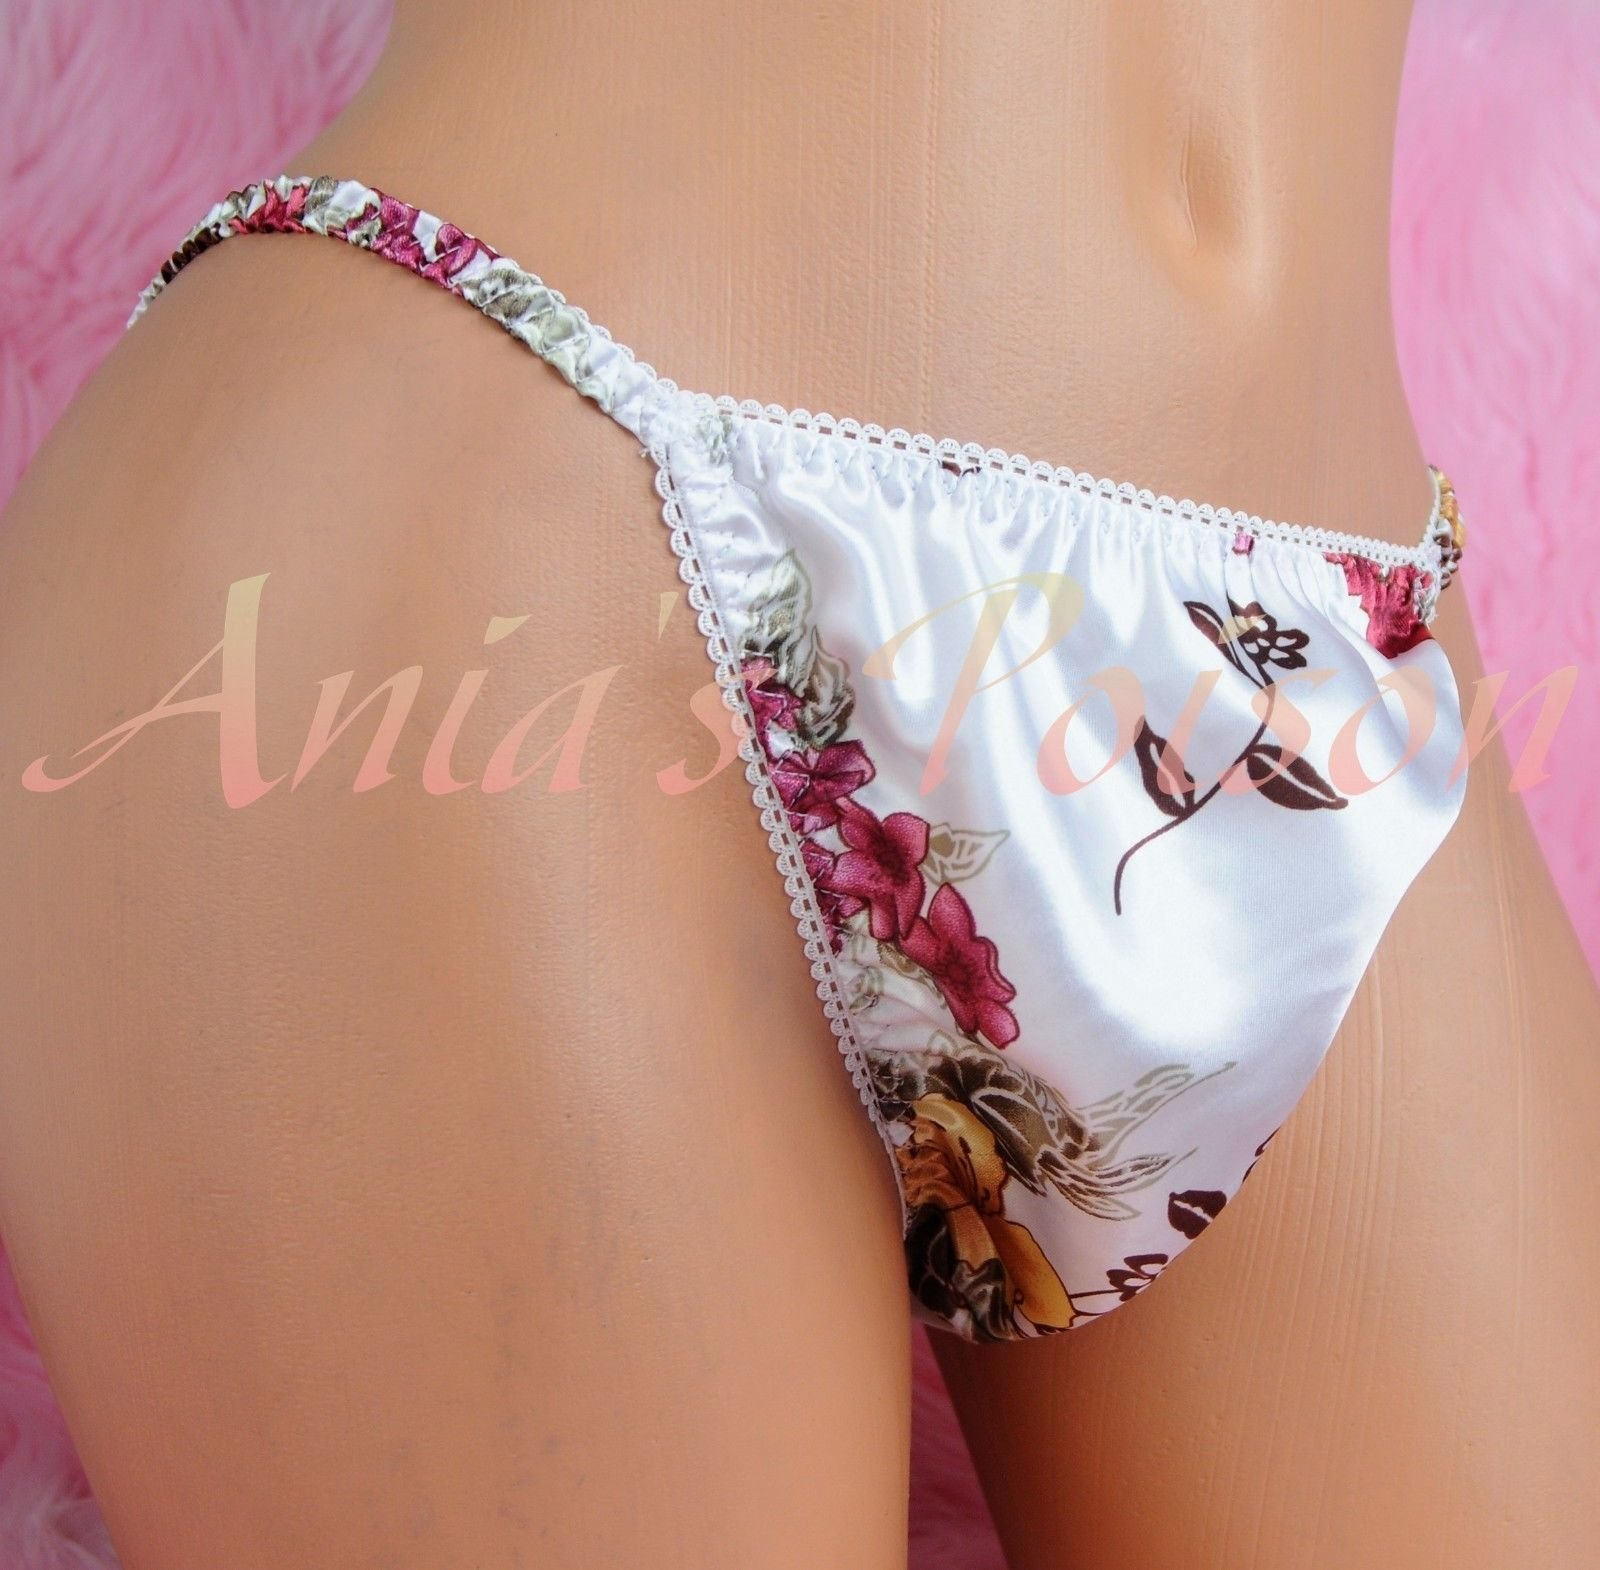 Ania's Poison MANties S - XXL Floral watercolor ladies Prints Super Rare 100% polyester string bikini sissy mens underwear panties